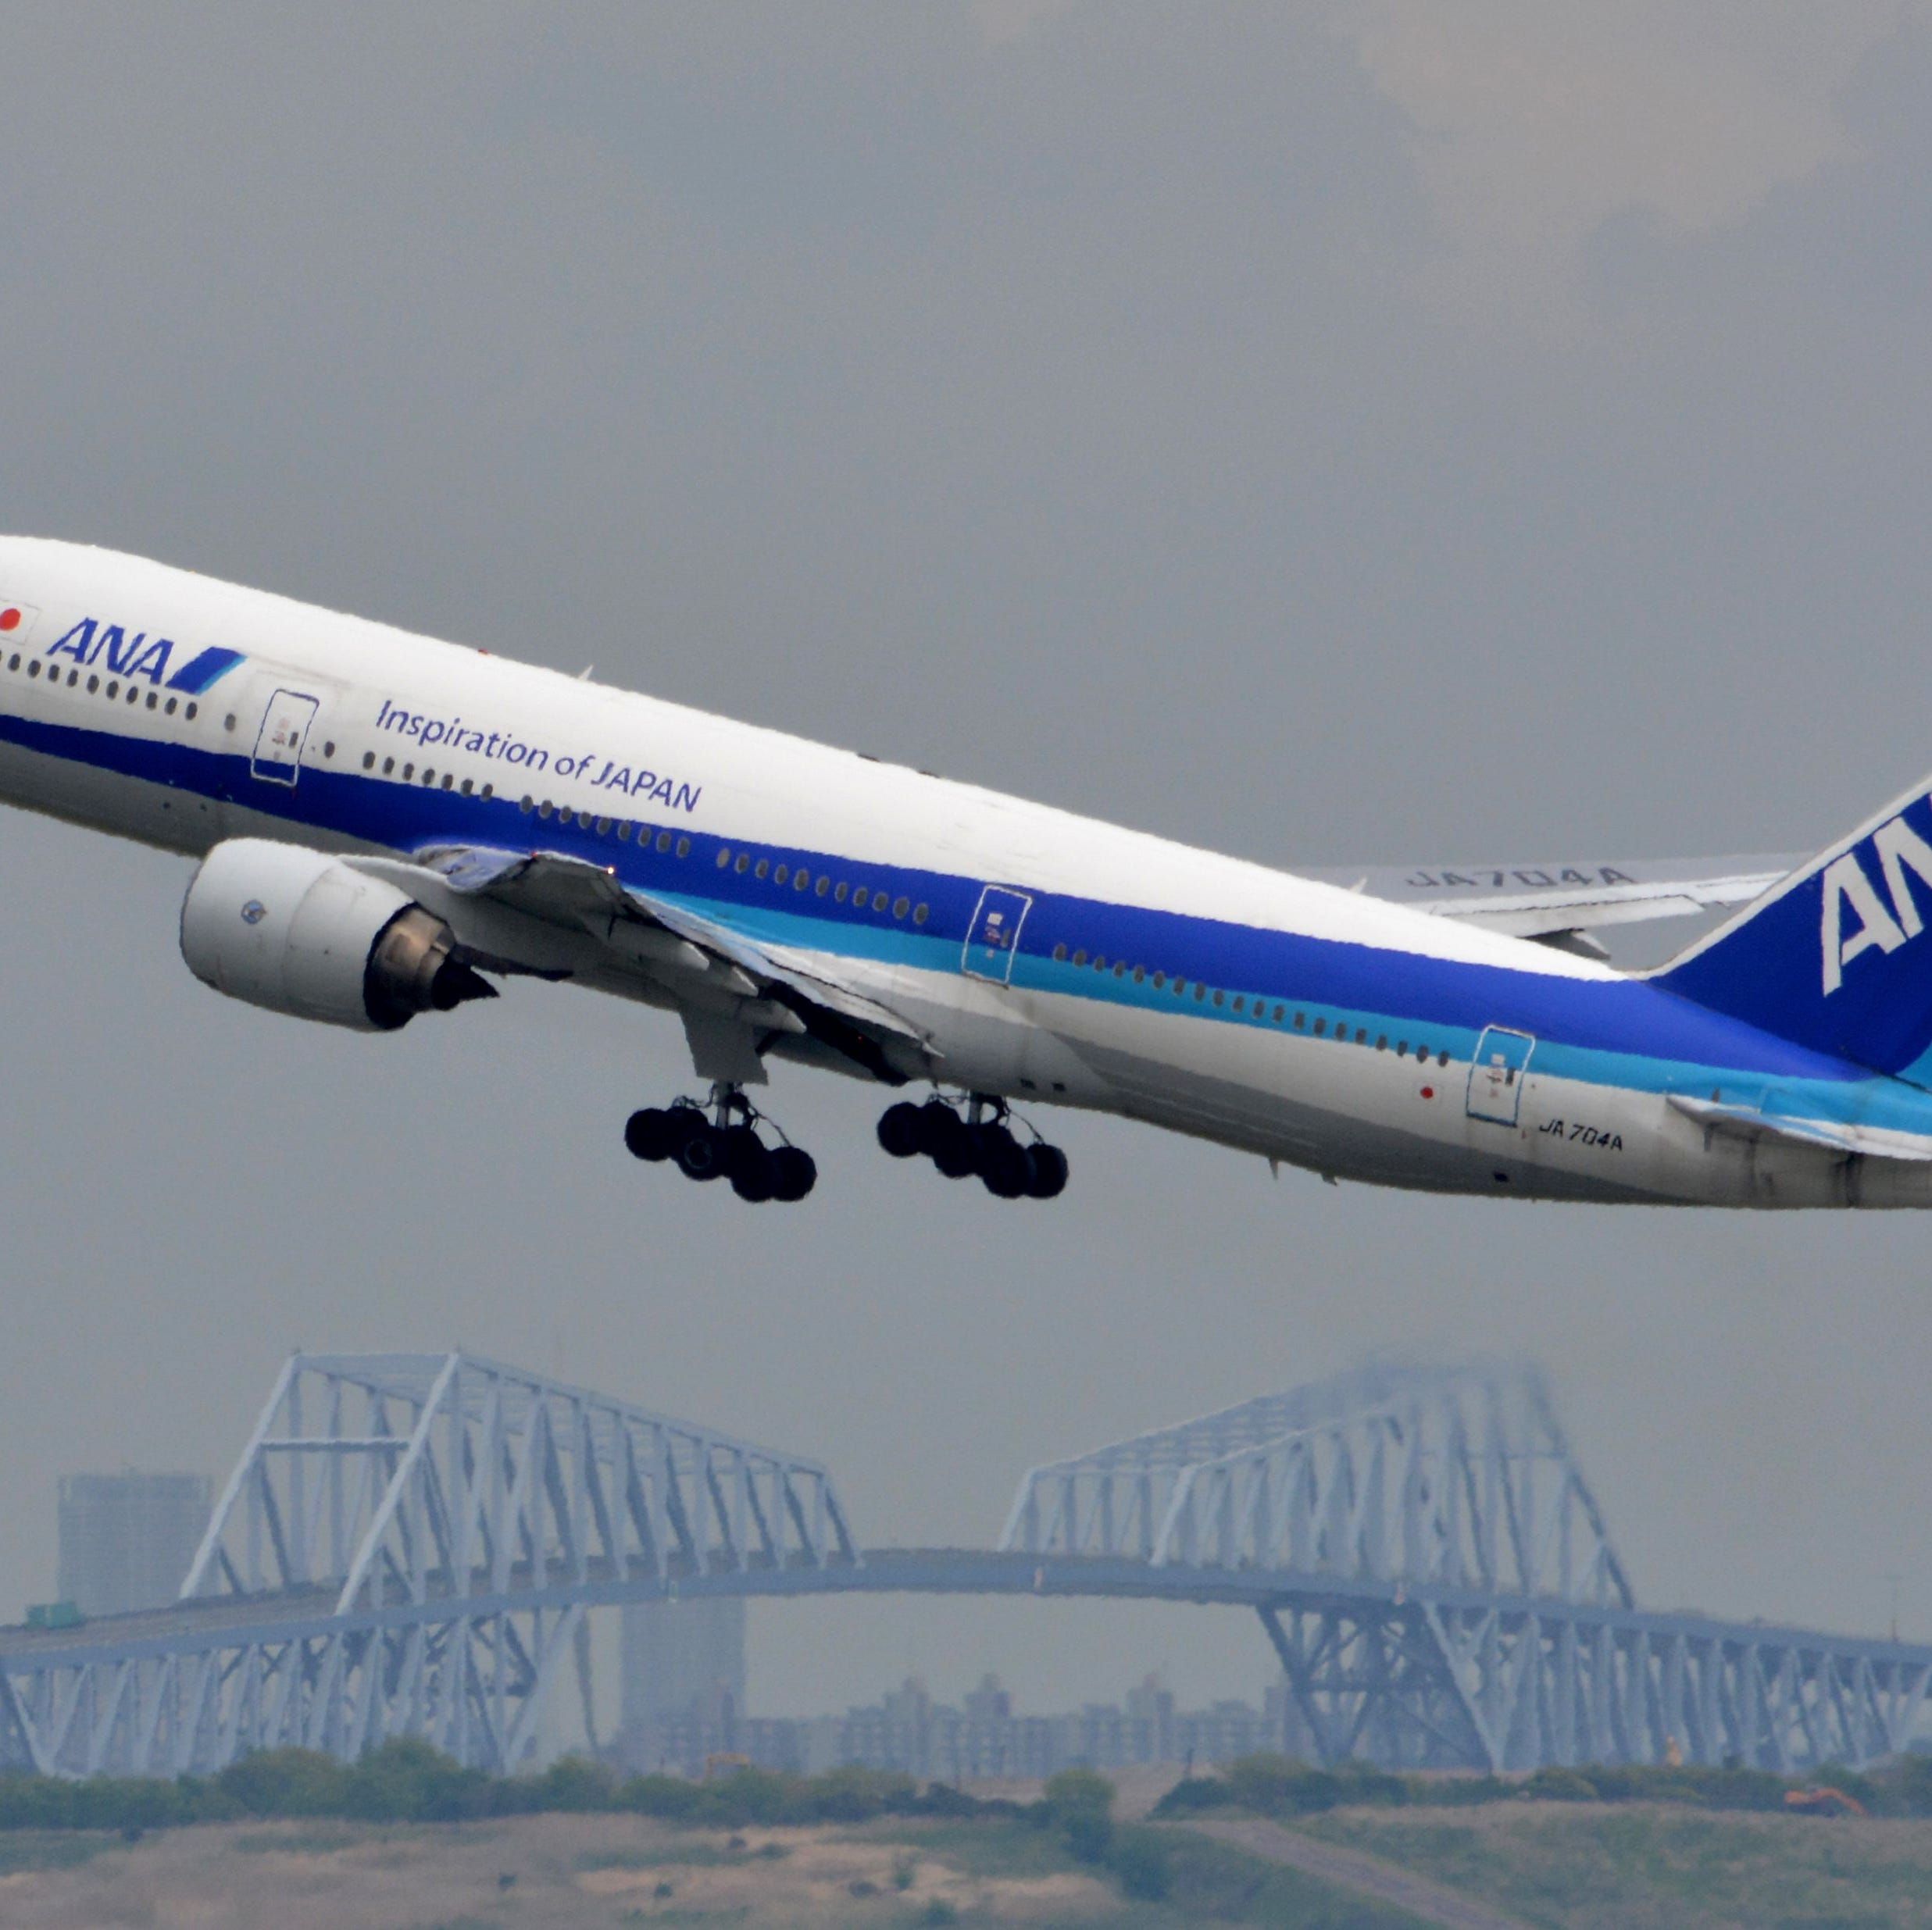 (FILES) This file photo taken on April 30, 2015 shows an All Nippon Airways (ANA) plane taking off at Tokyo's Haneda airport.